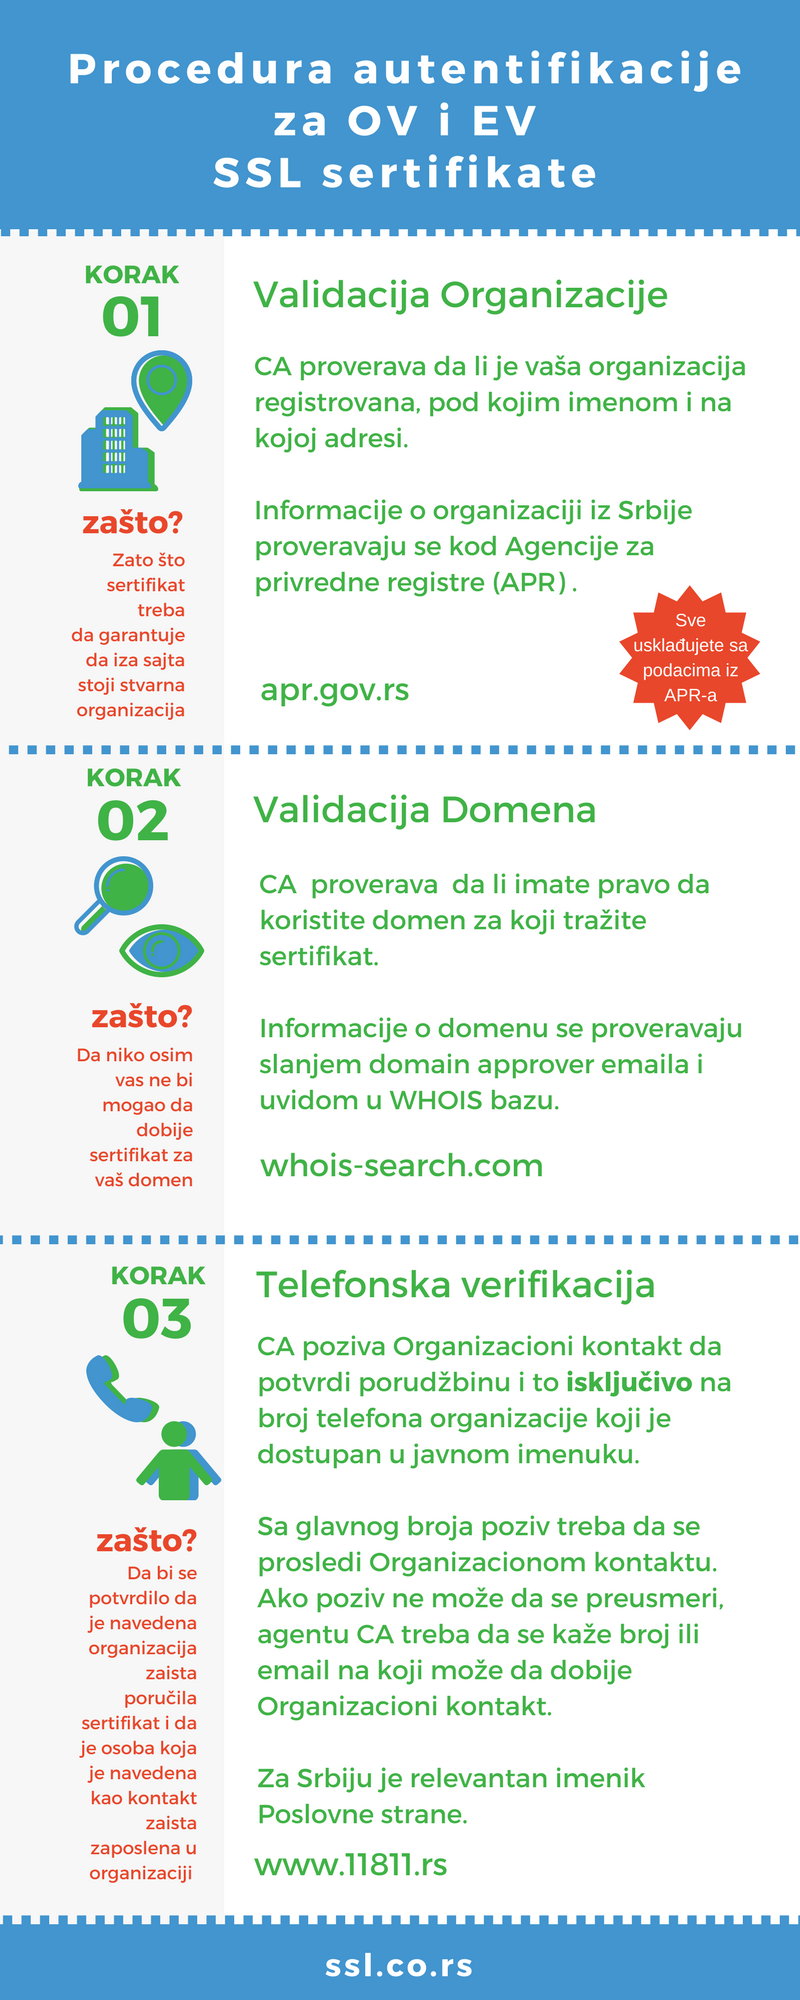 Infografik procedura SSL autentifikacije